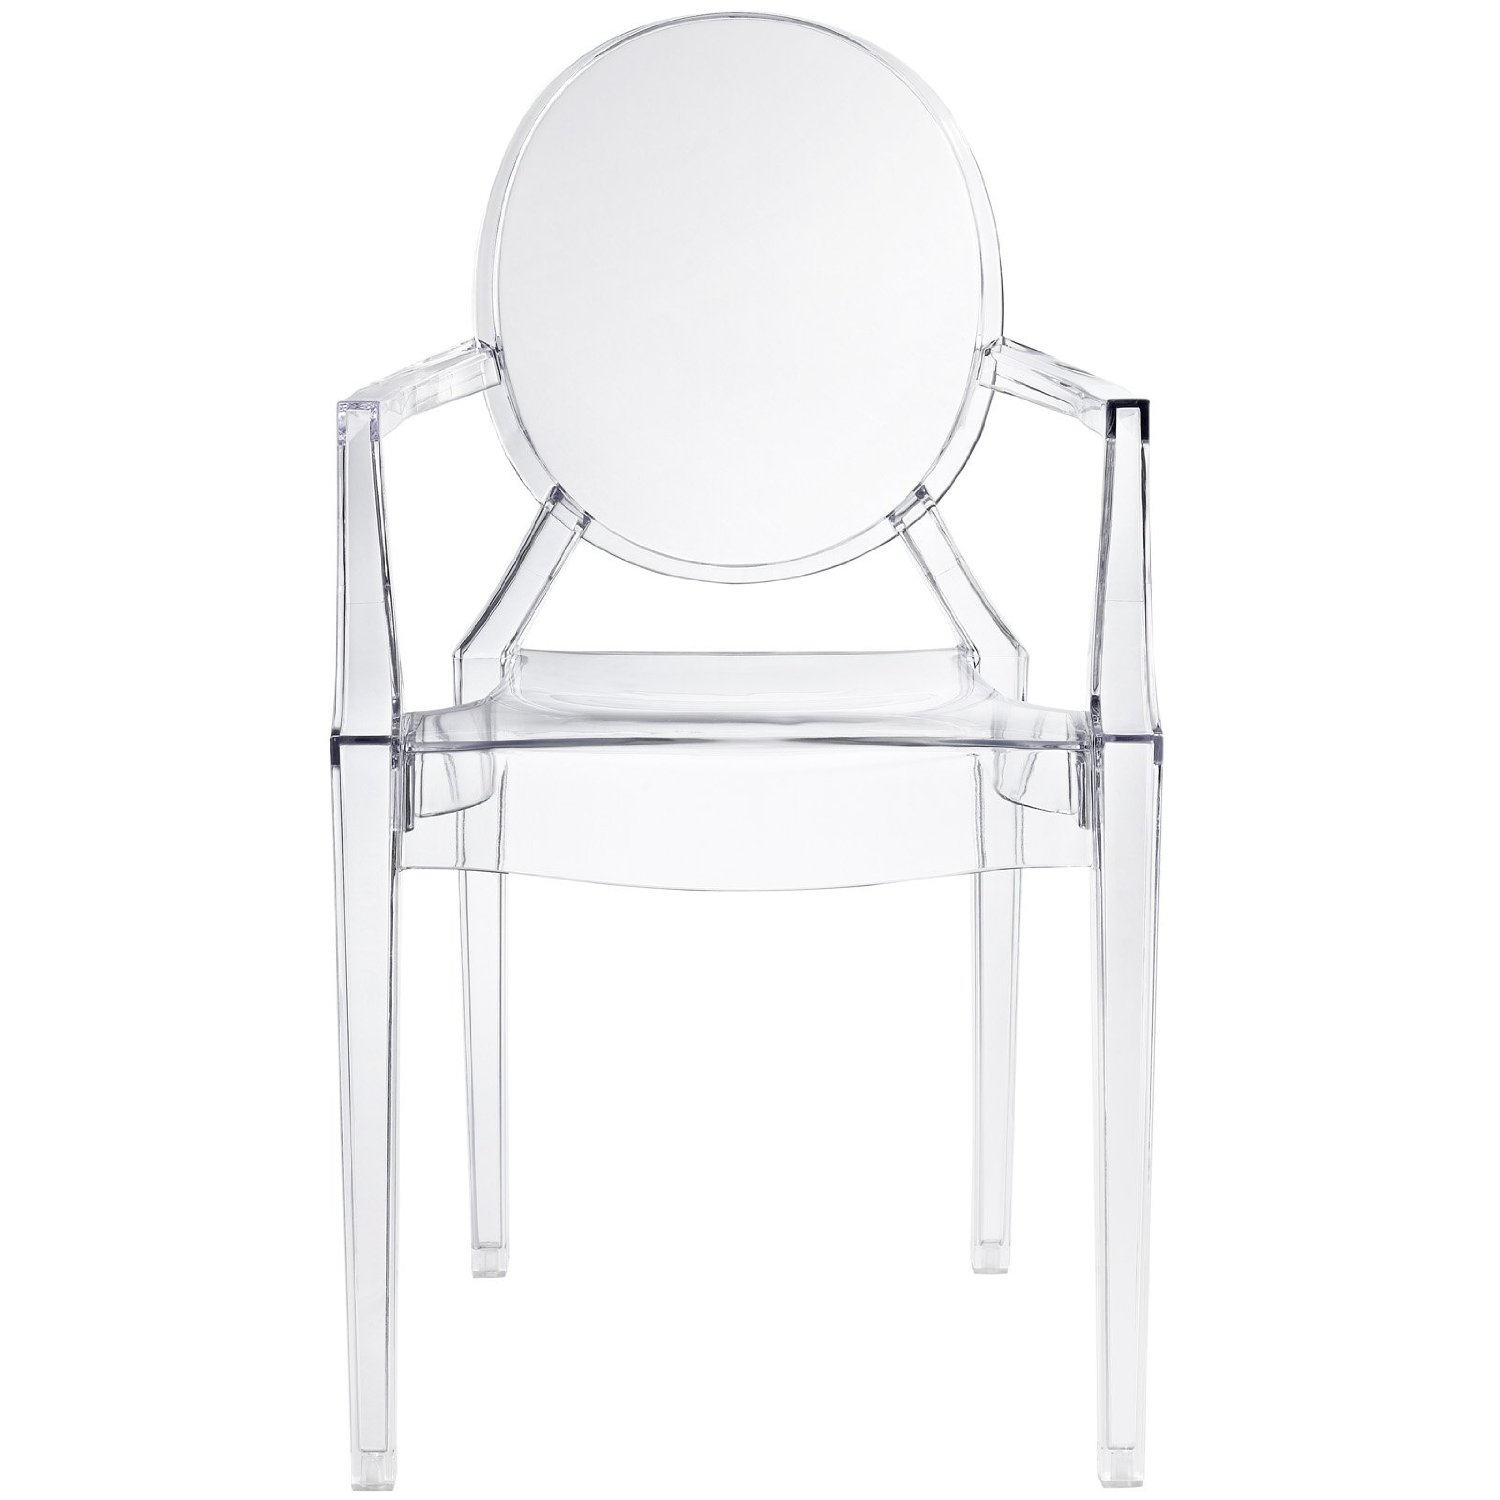 Ghost Chairs Trending Ghost Chairs Boston Design Guide